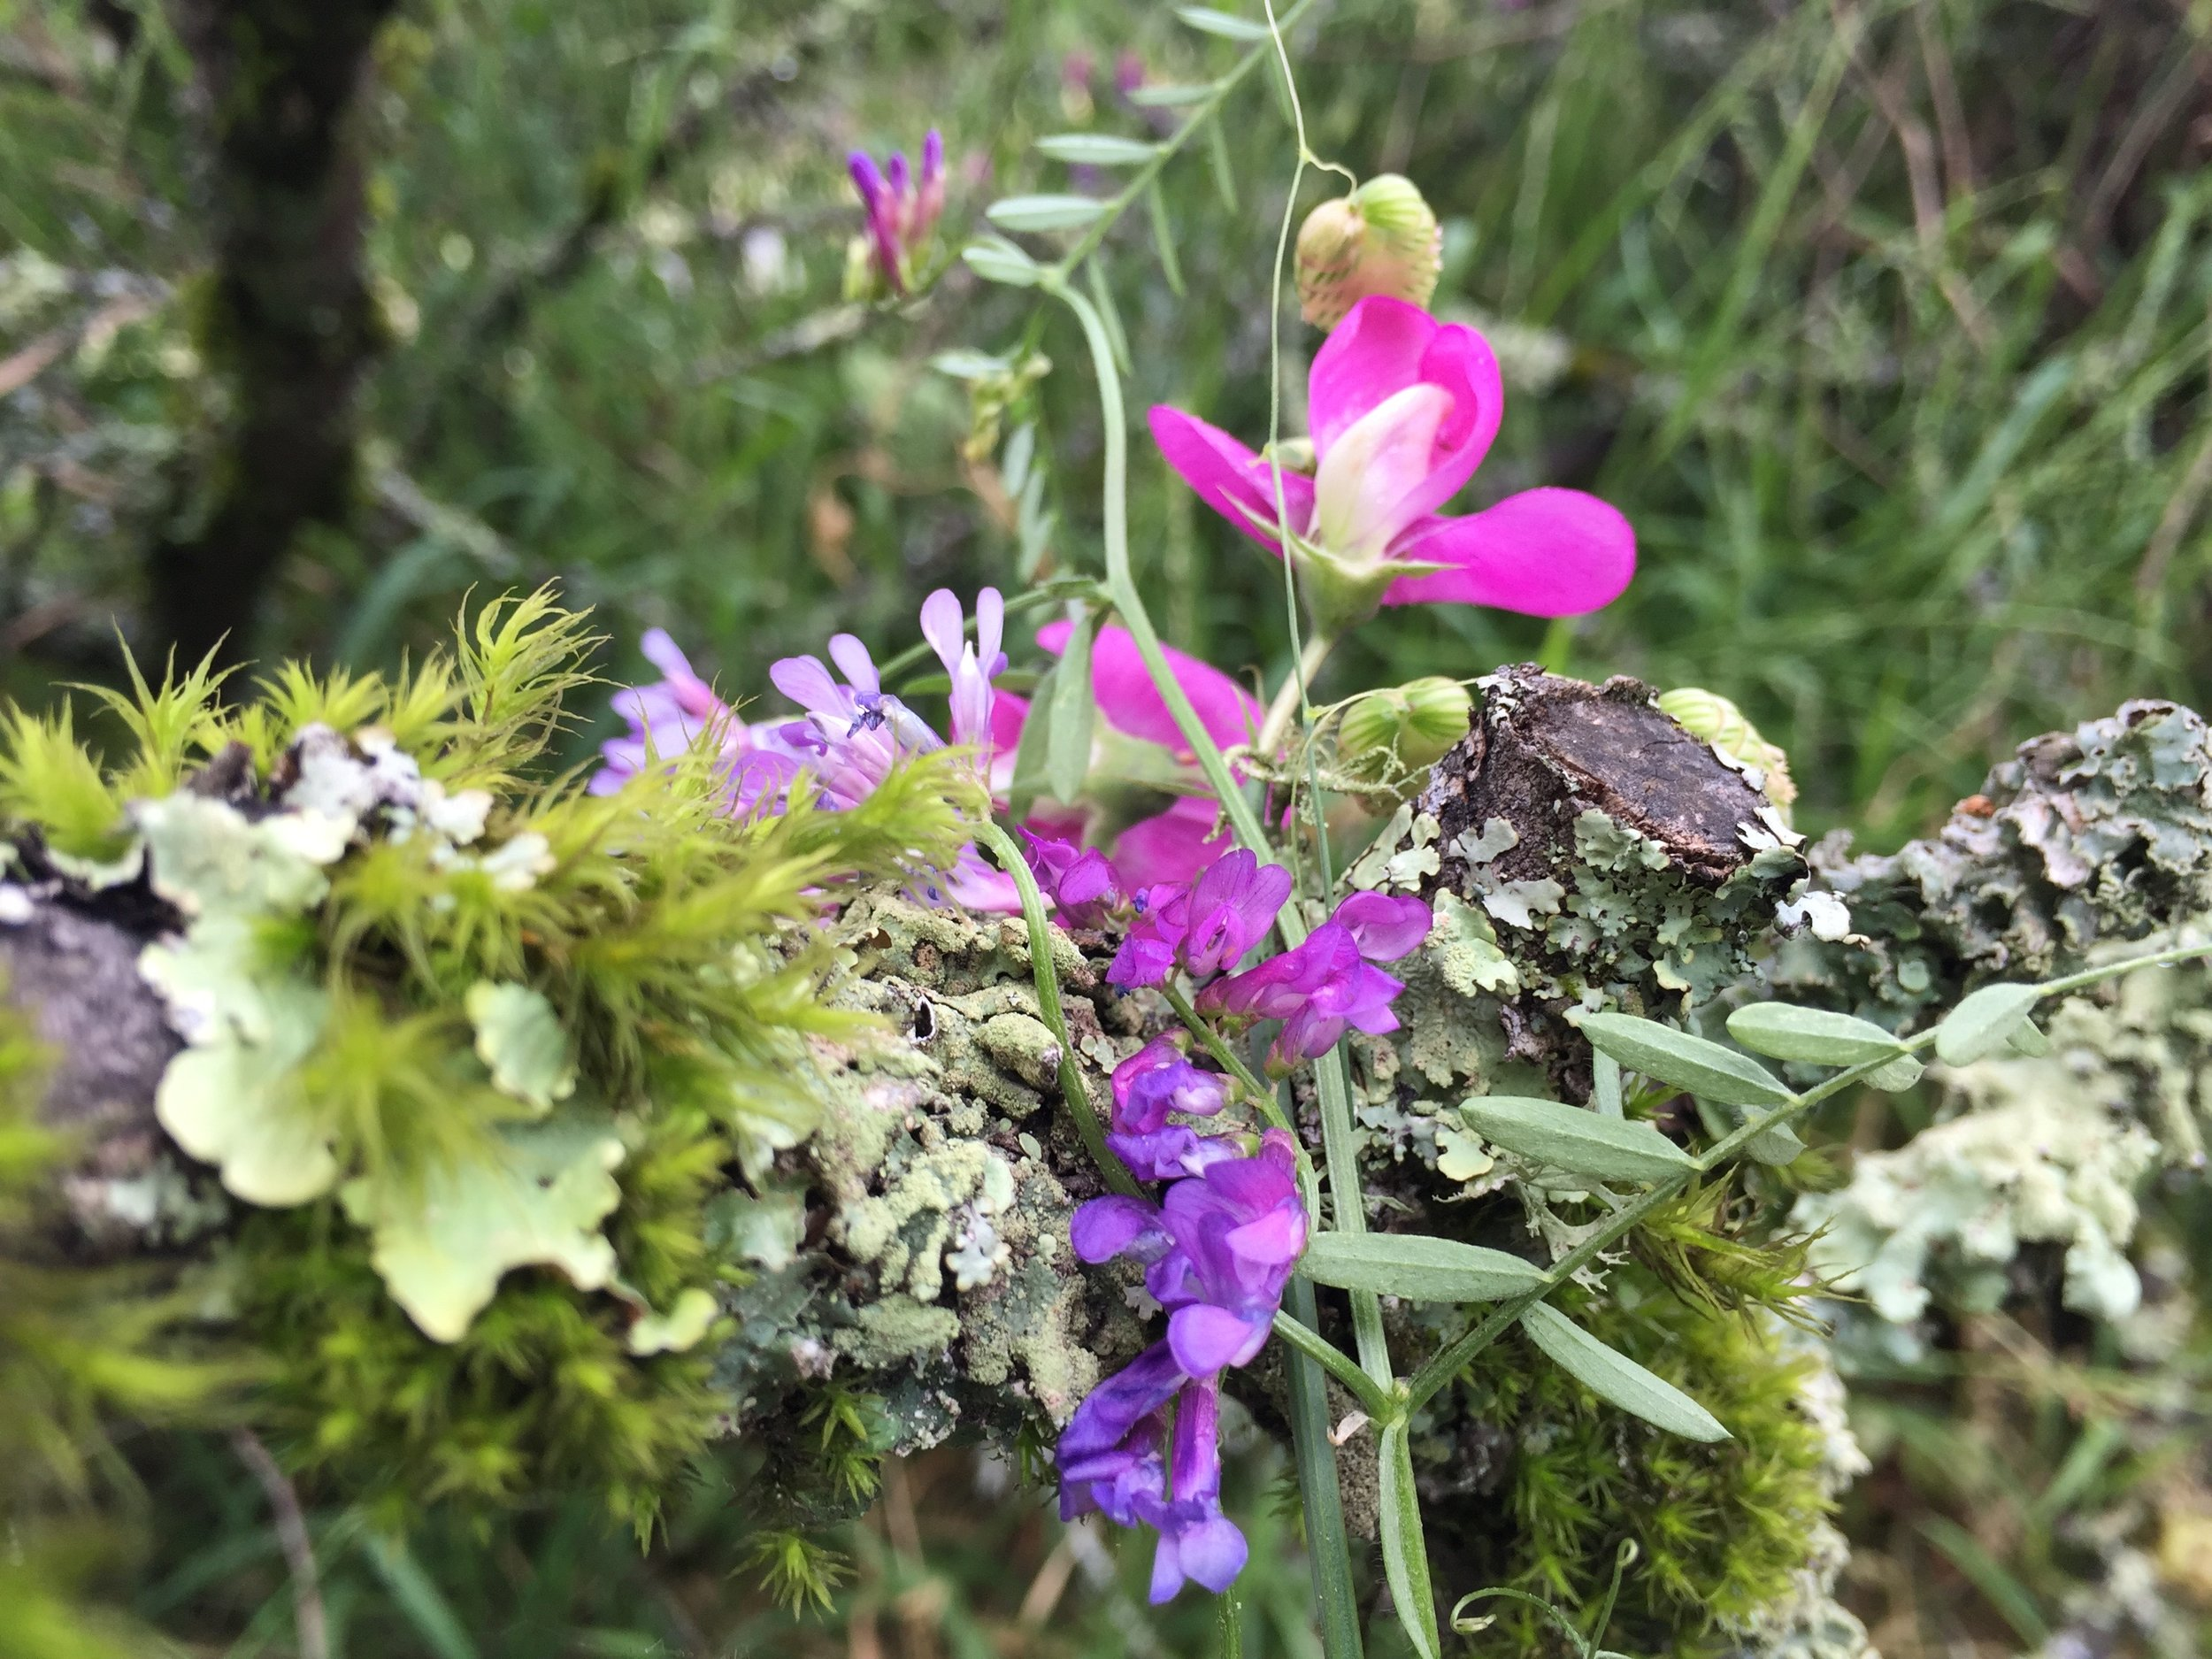 a little bouquet I foraged on our last hike, in the Berkeley hills: Exotic sweet pea and vetch, along with some rattlesnake grass and a Ceanothus branch covered with lichens and mosses